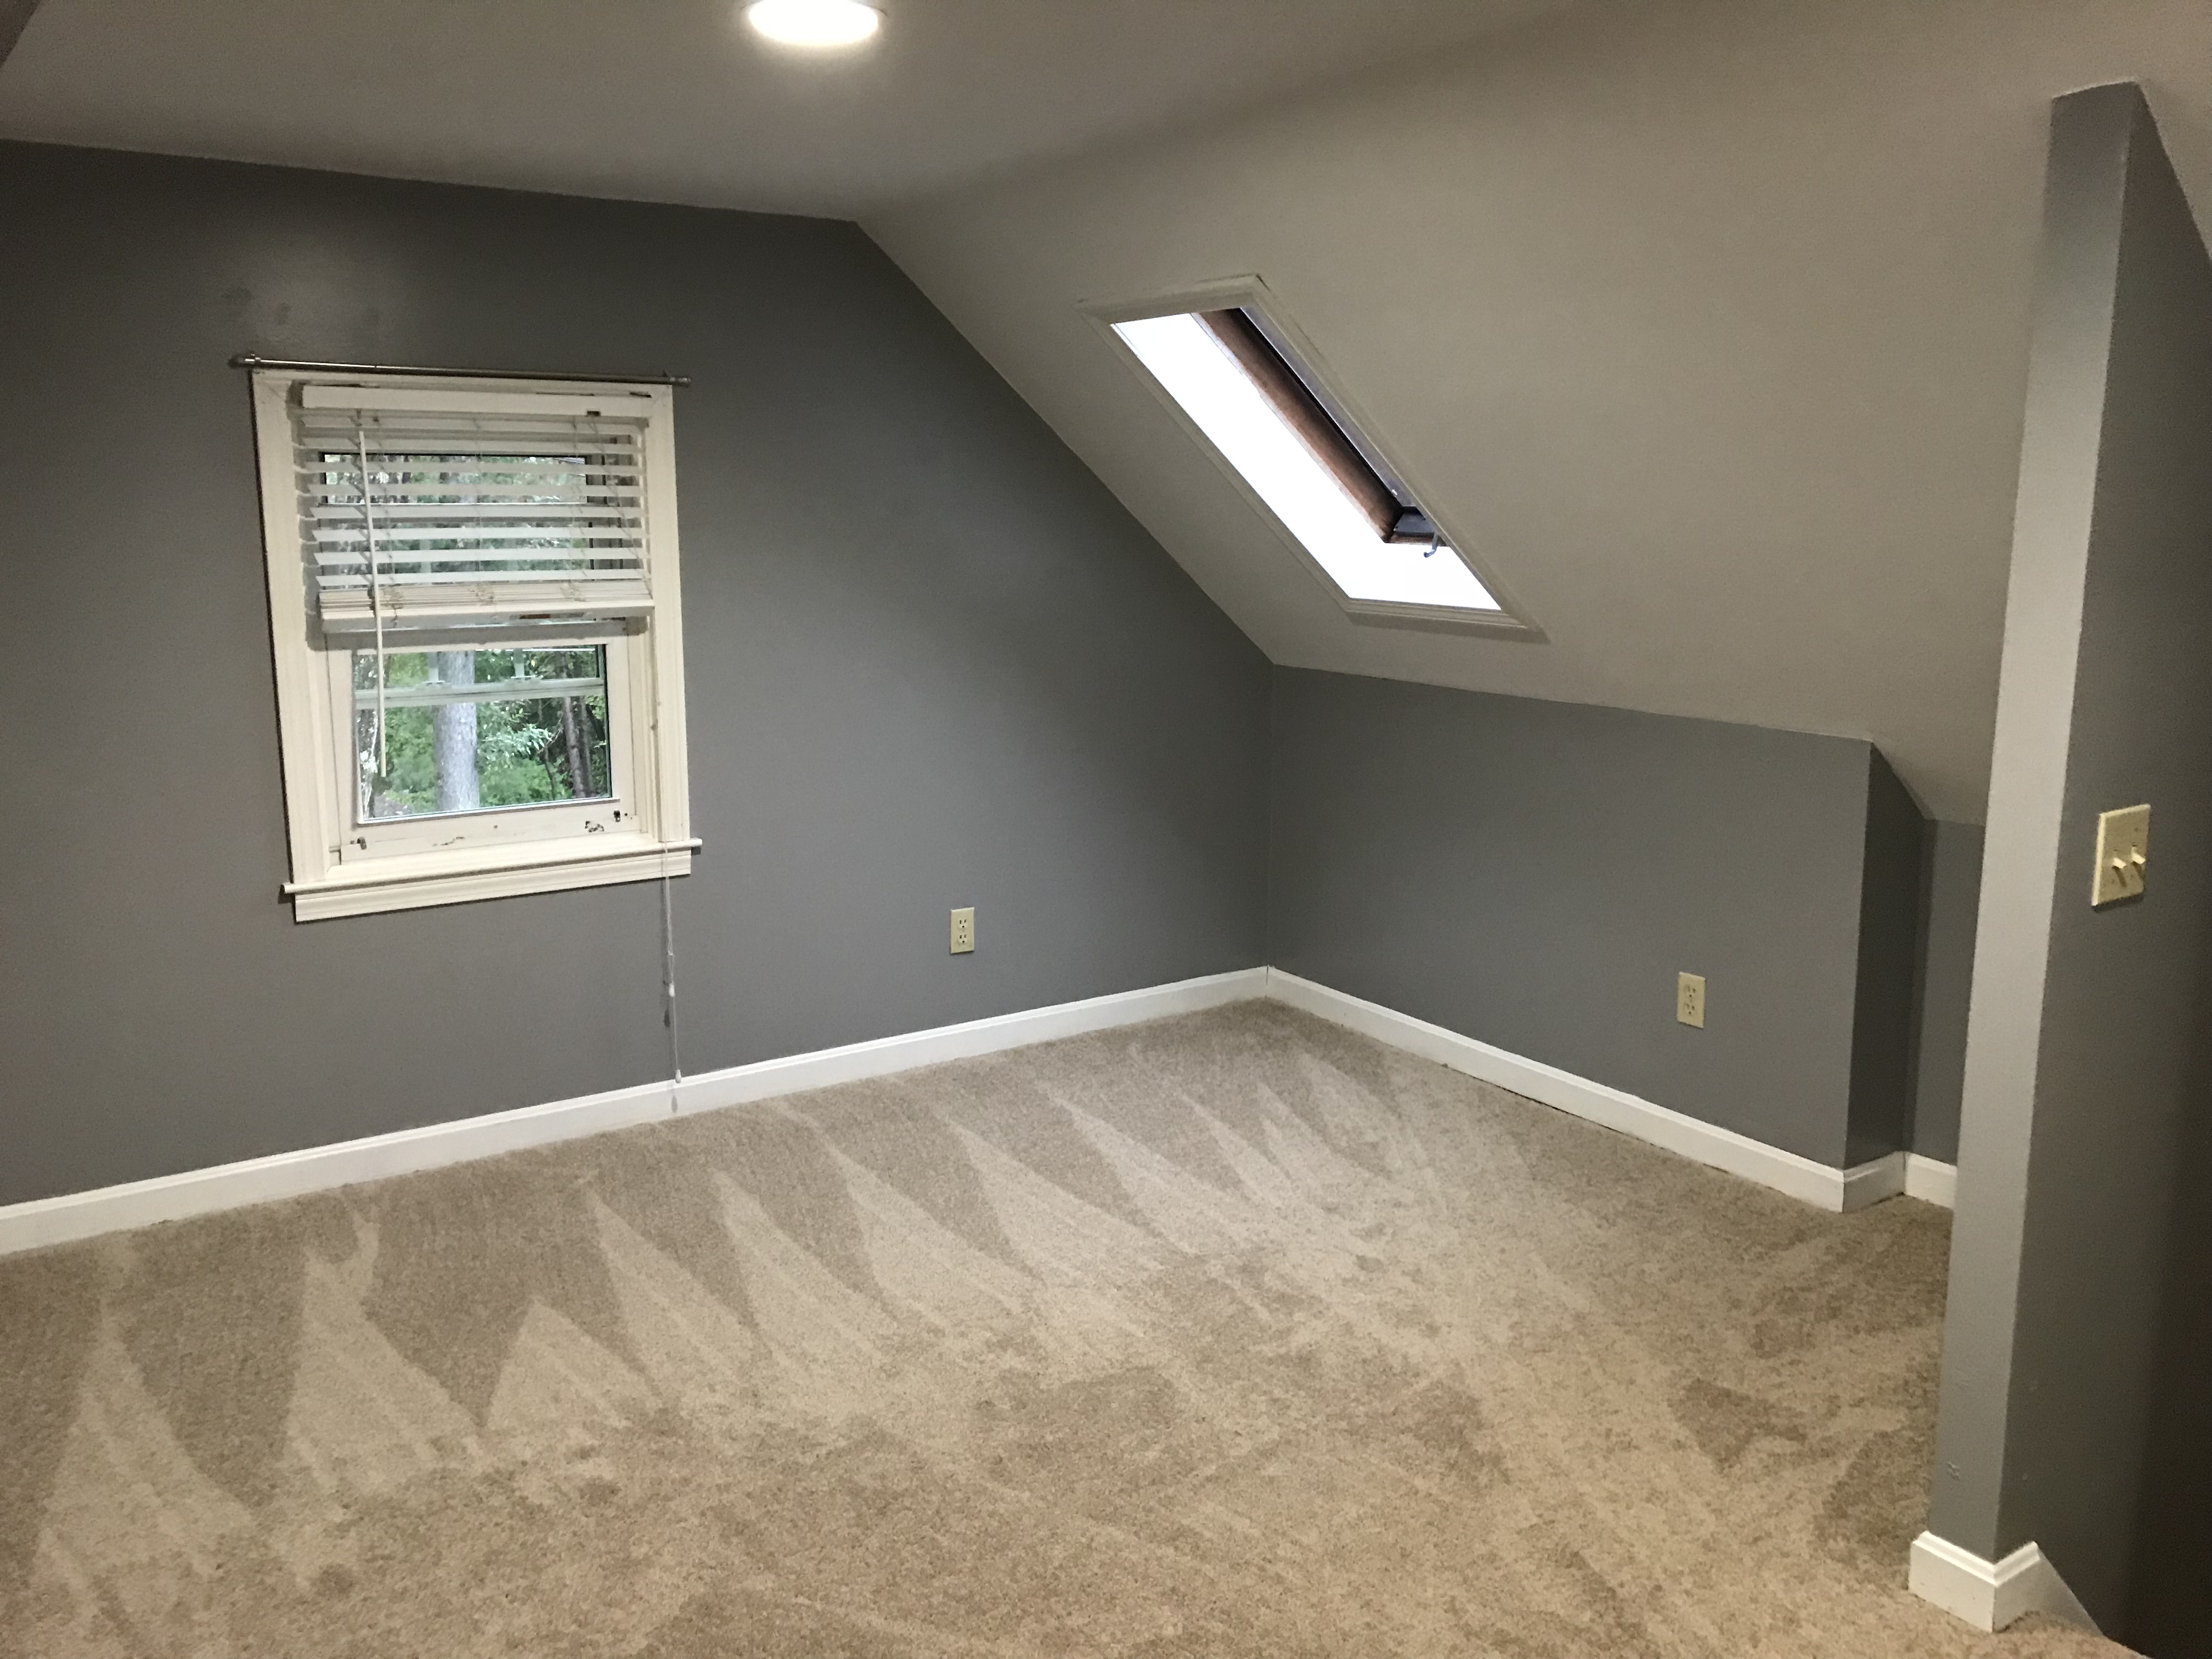 Elegant National Floors Direct Has Made Me A Believer. Great Flooring At A Fair  Price Installed Quickly And Professionally. Thanks Again Wayne For Helping  Us Take ...